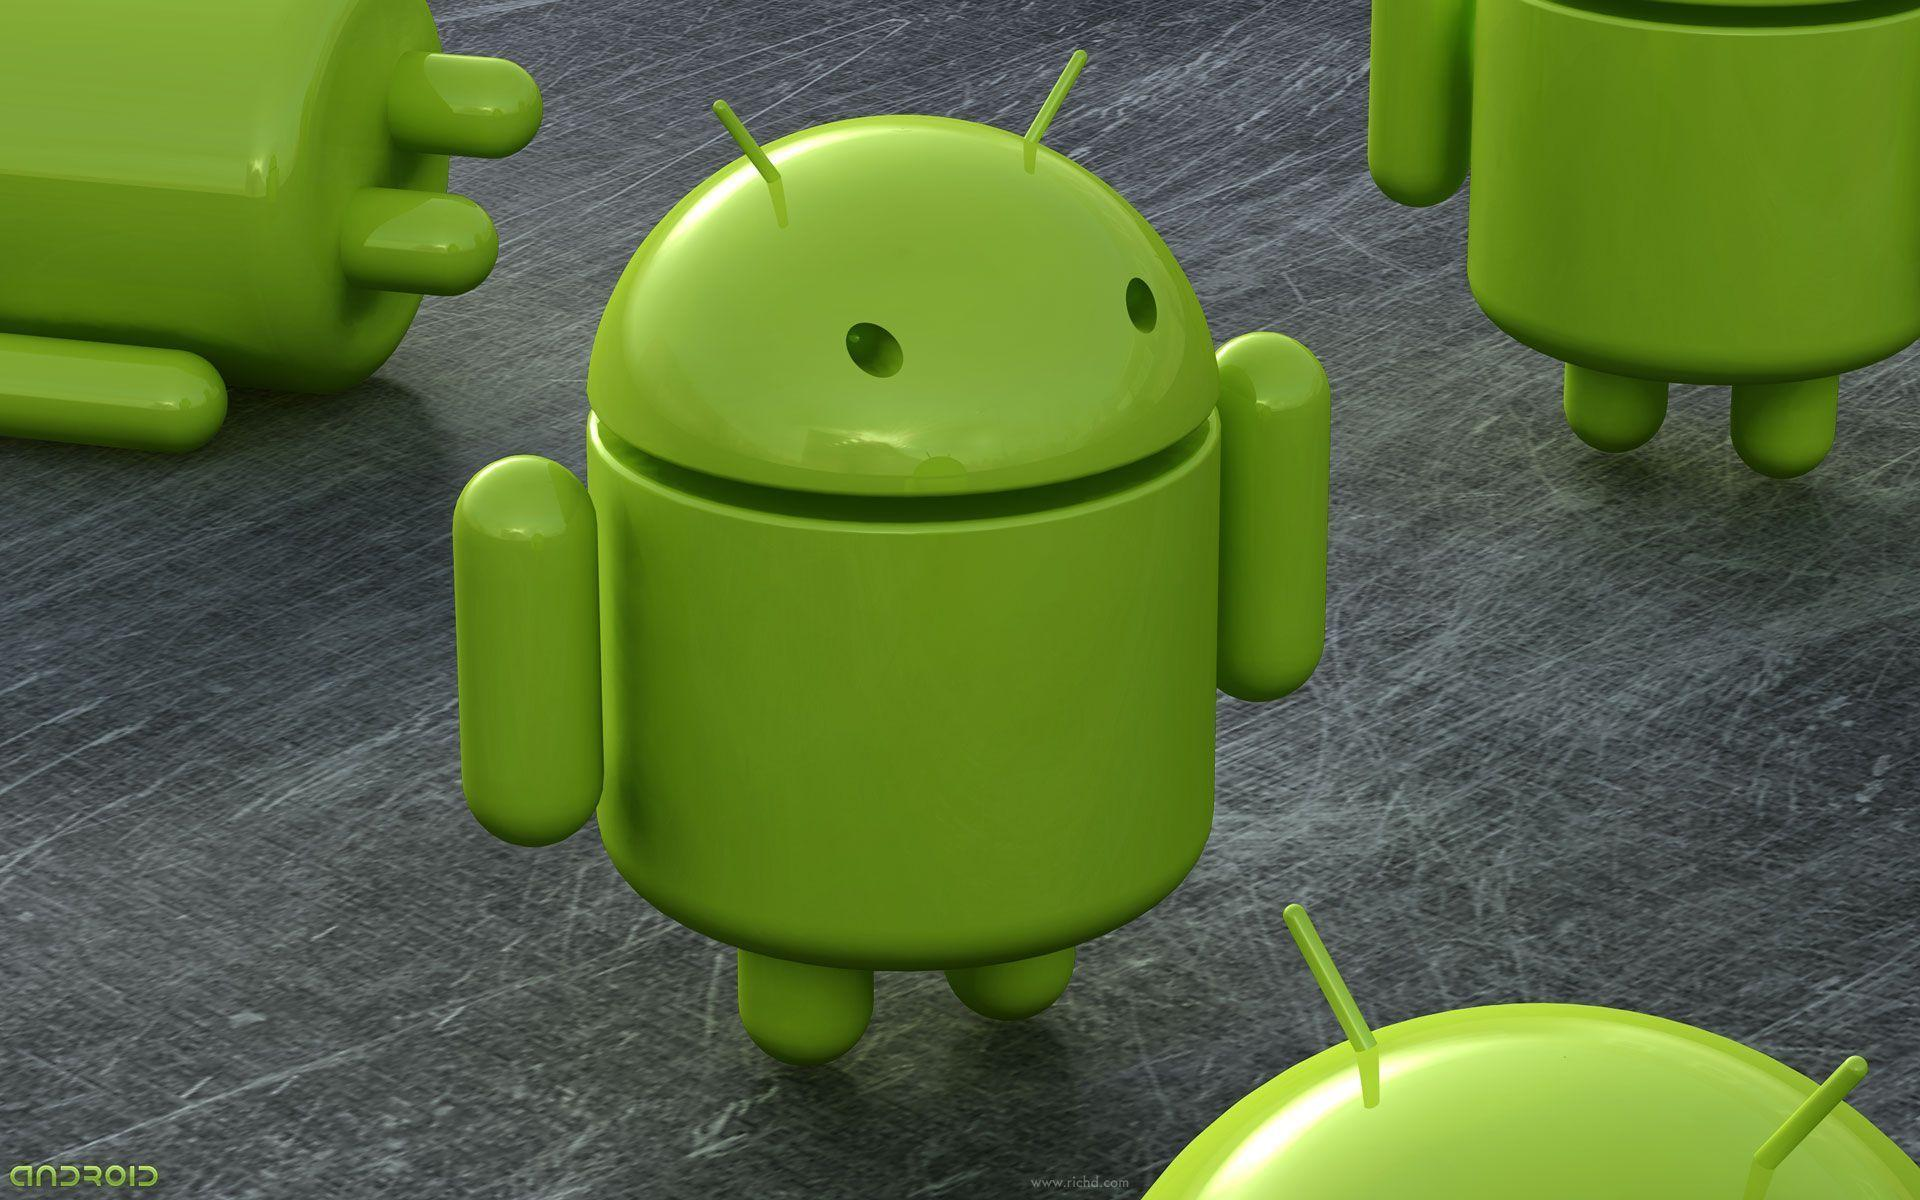 25 Most Beautiful And Popular Android Wallpapers | 25dip